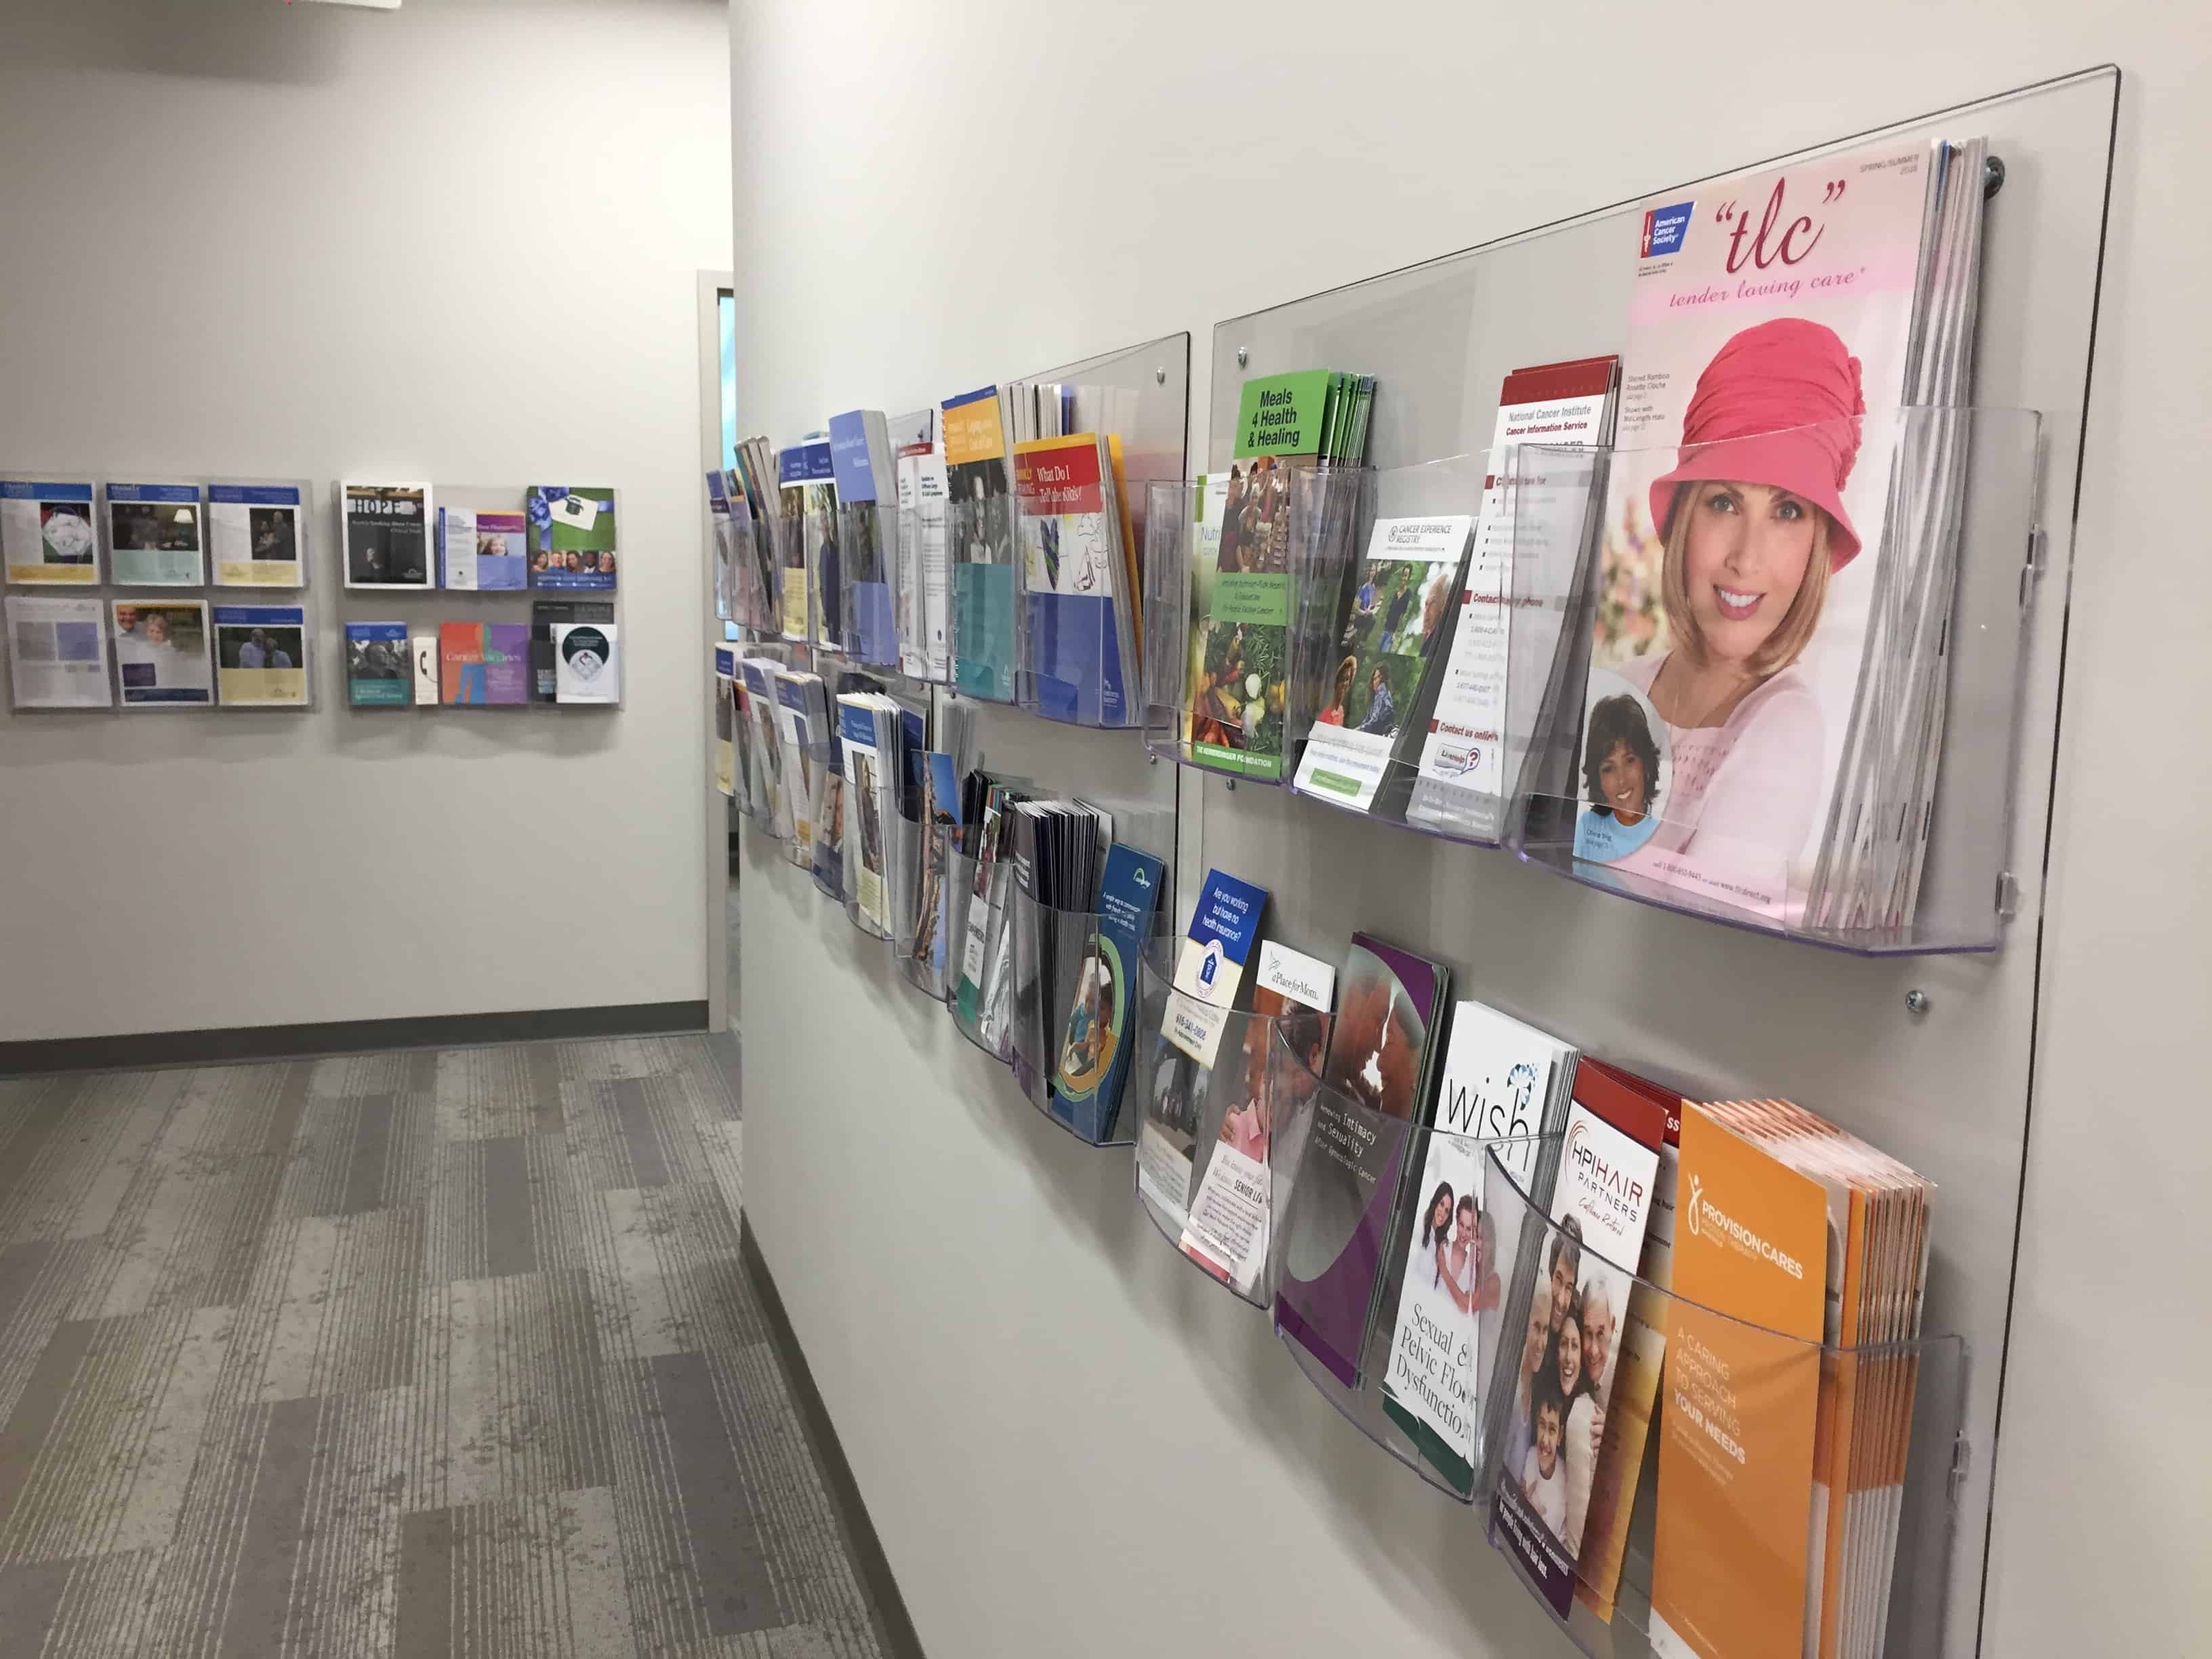 Gilda's Club Middle Tennessee free cancer support Williamson County resource library